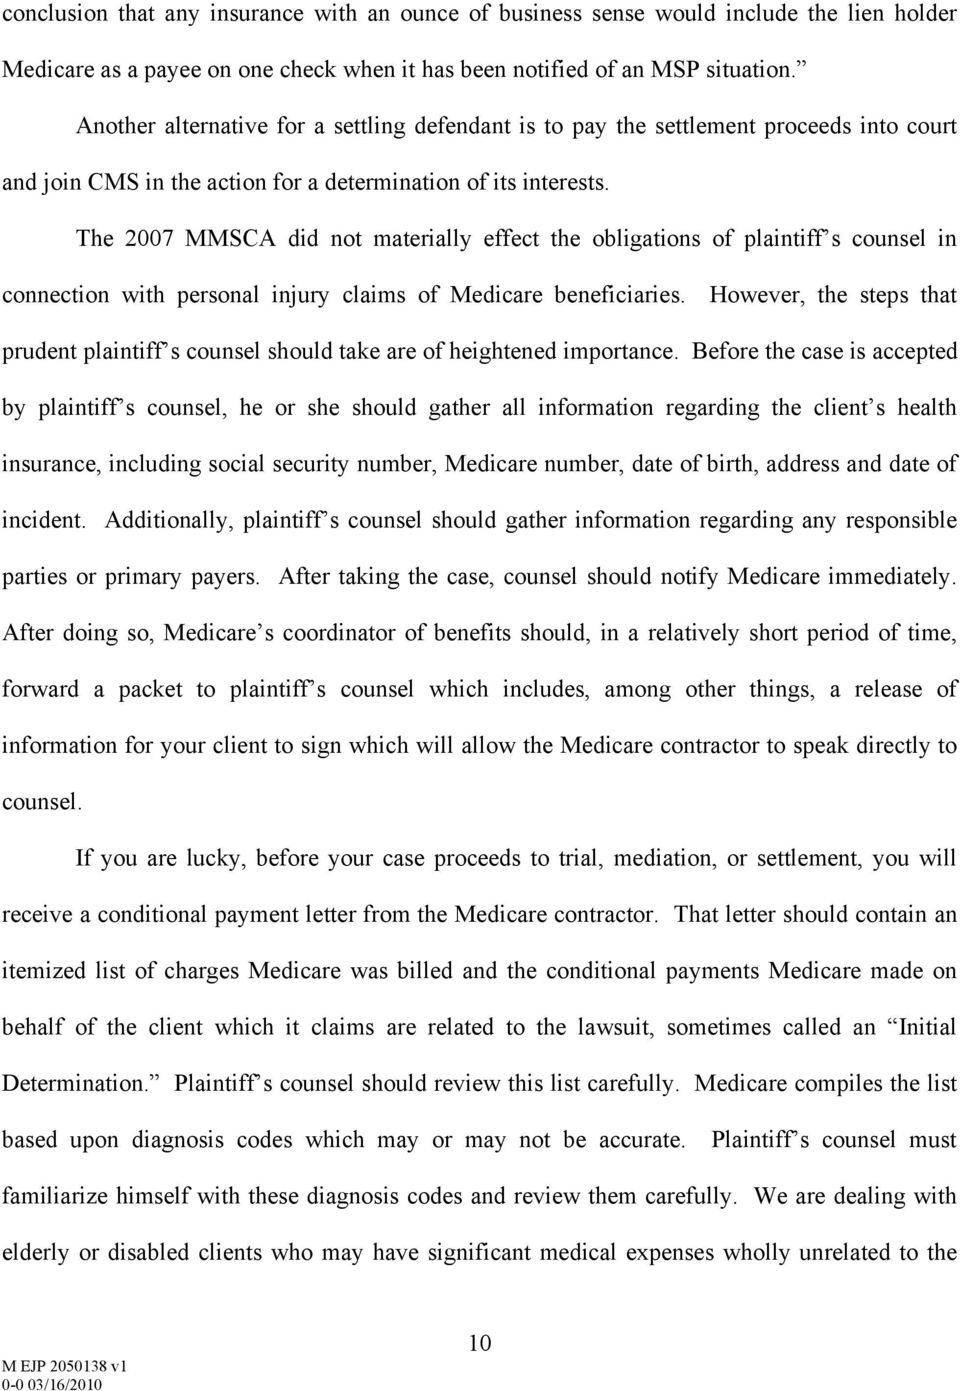 The 2007 MMSCA did not materially effect the obligations of plaintiff s counsel in connection with personal injury claims of Medicare beneficiaries.